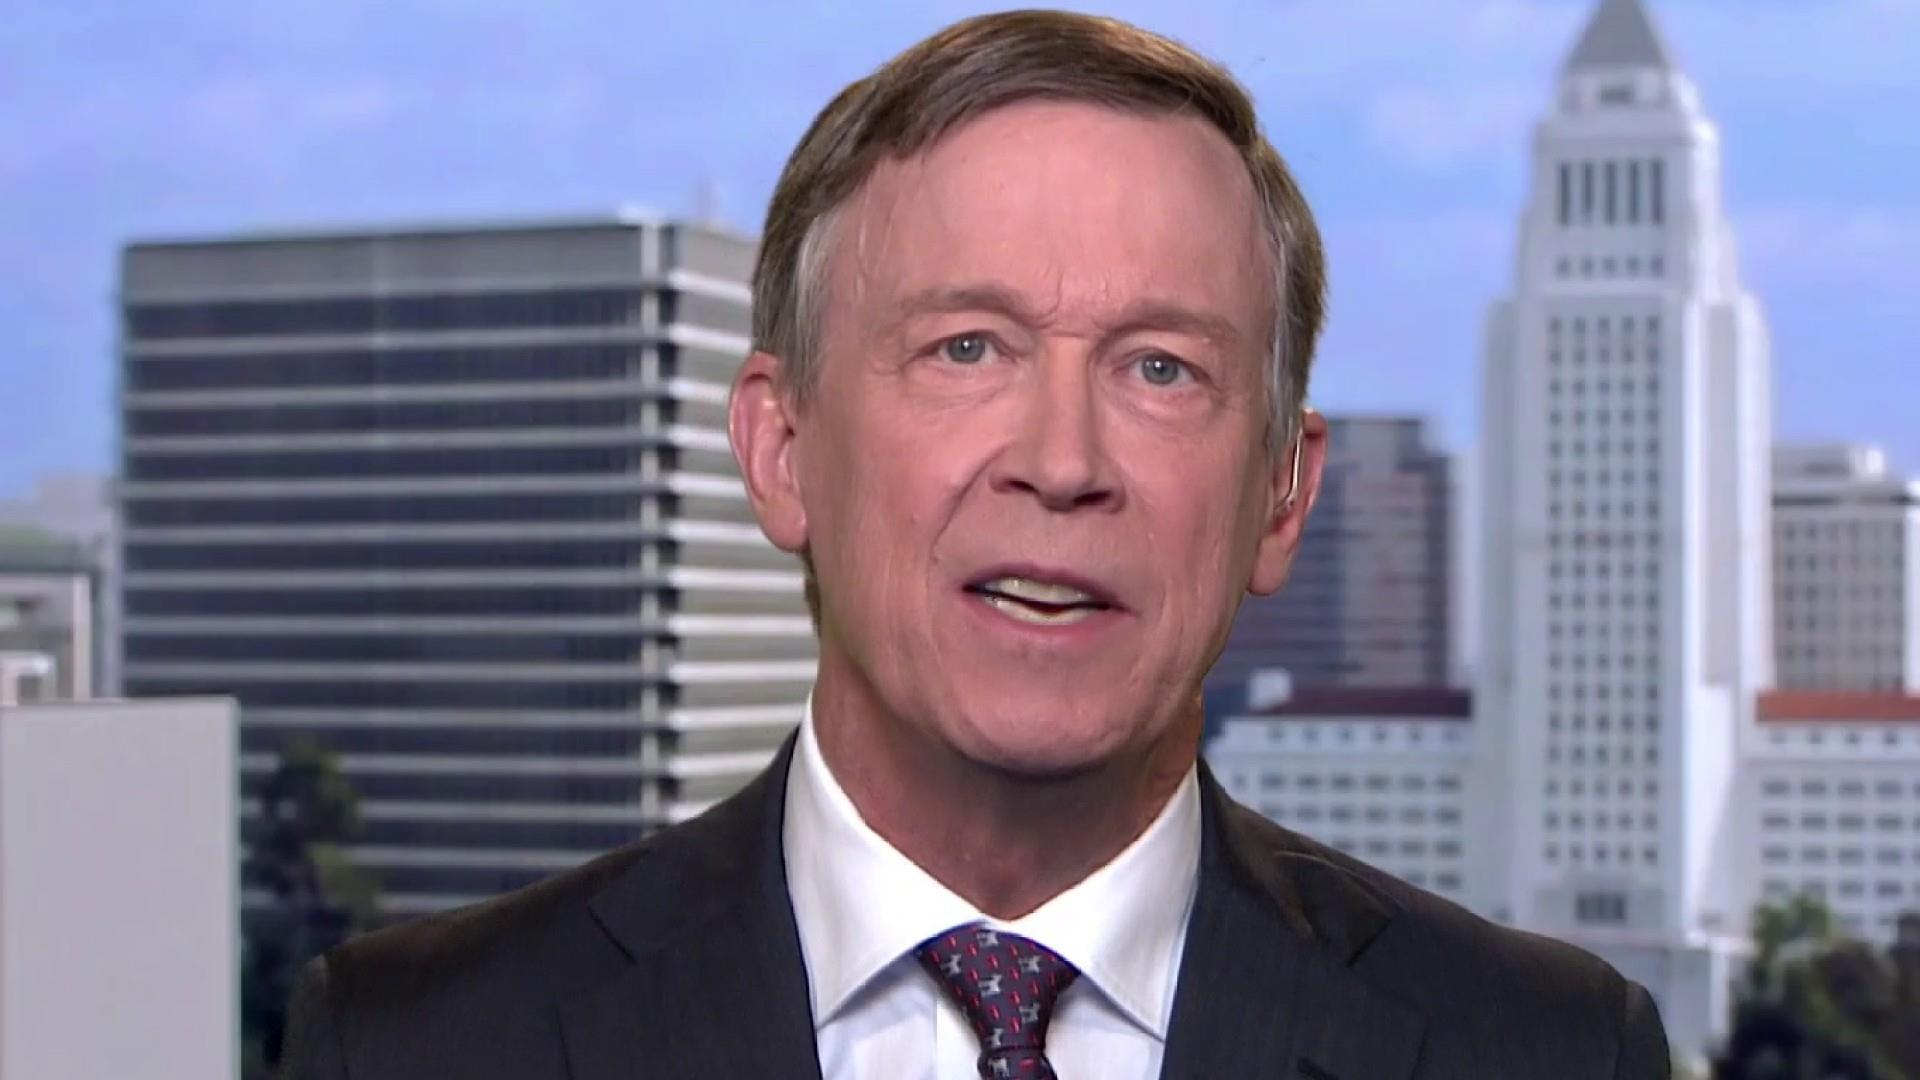 Fmr. Gov. Hickenlooper: We've got to put competition back into capitalism